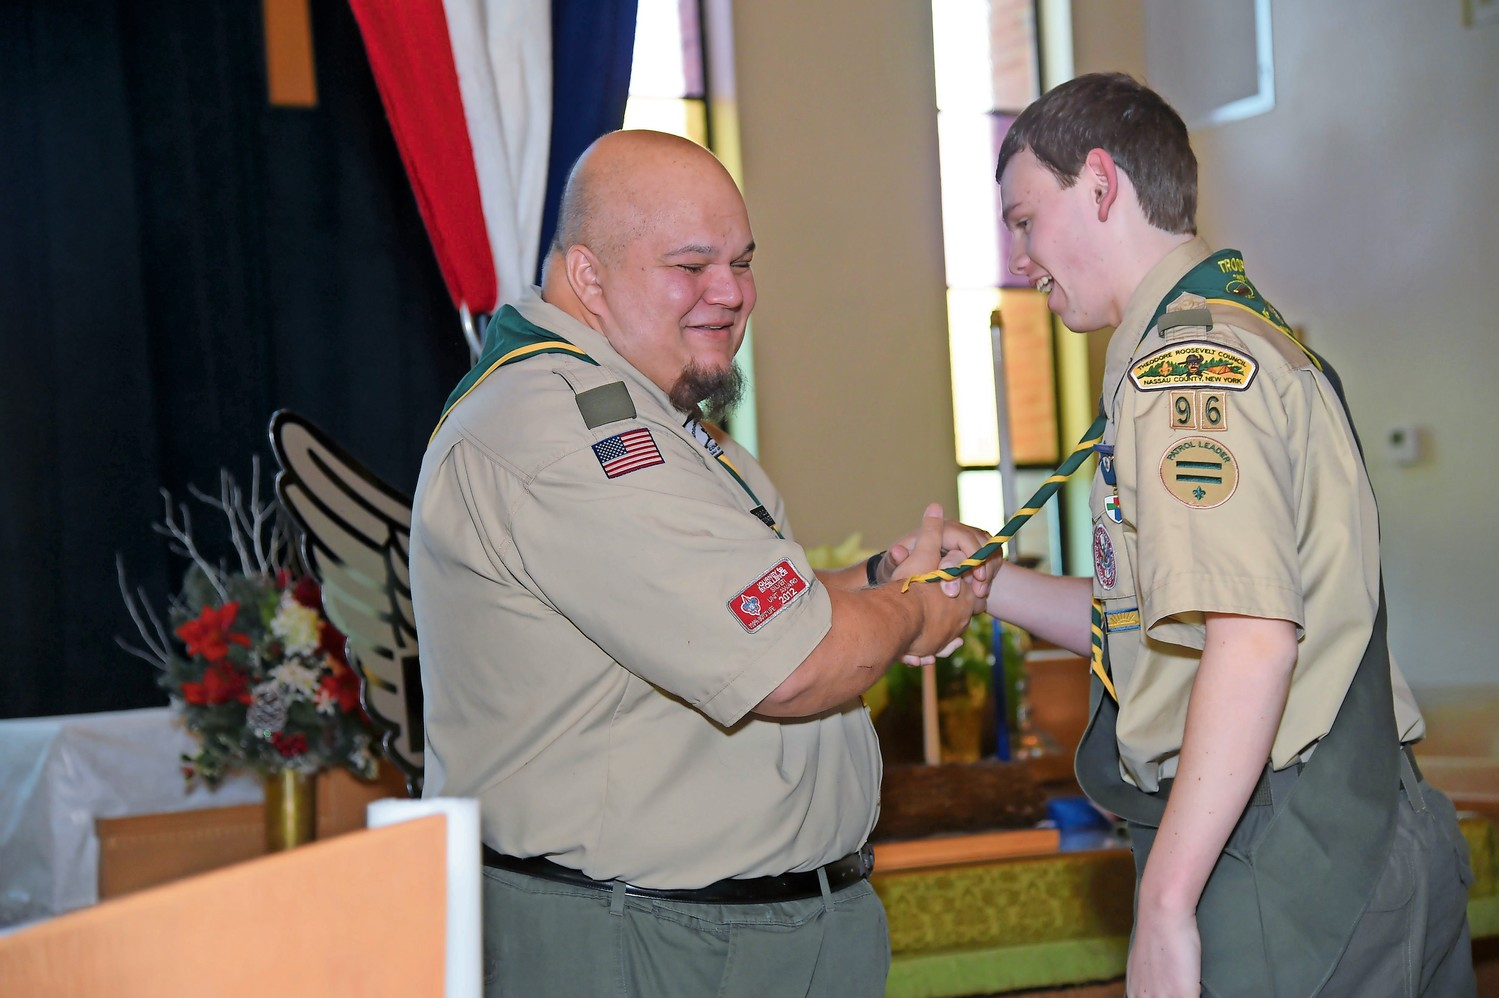 Parola thanked Troop 96 Assistant Scoutmaster Anthony Fillizola, left, after Fillizola spoke of Parola's journey to Eagle Scout.